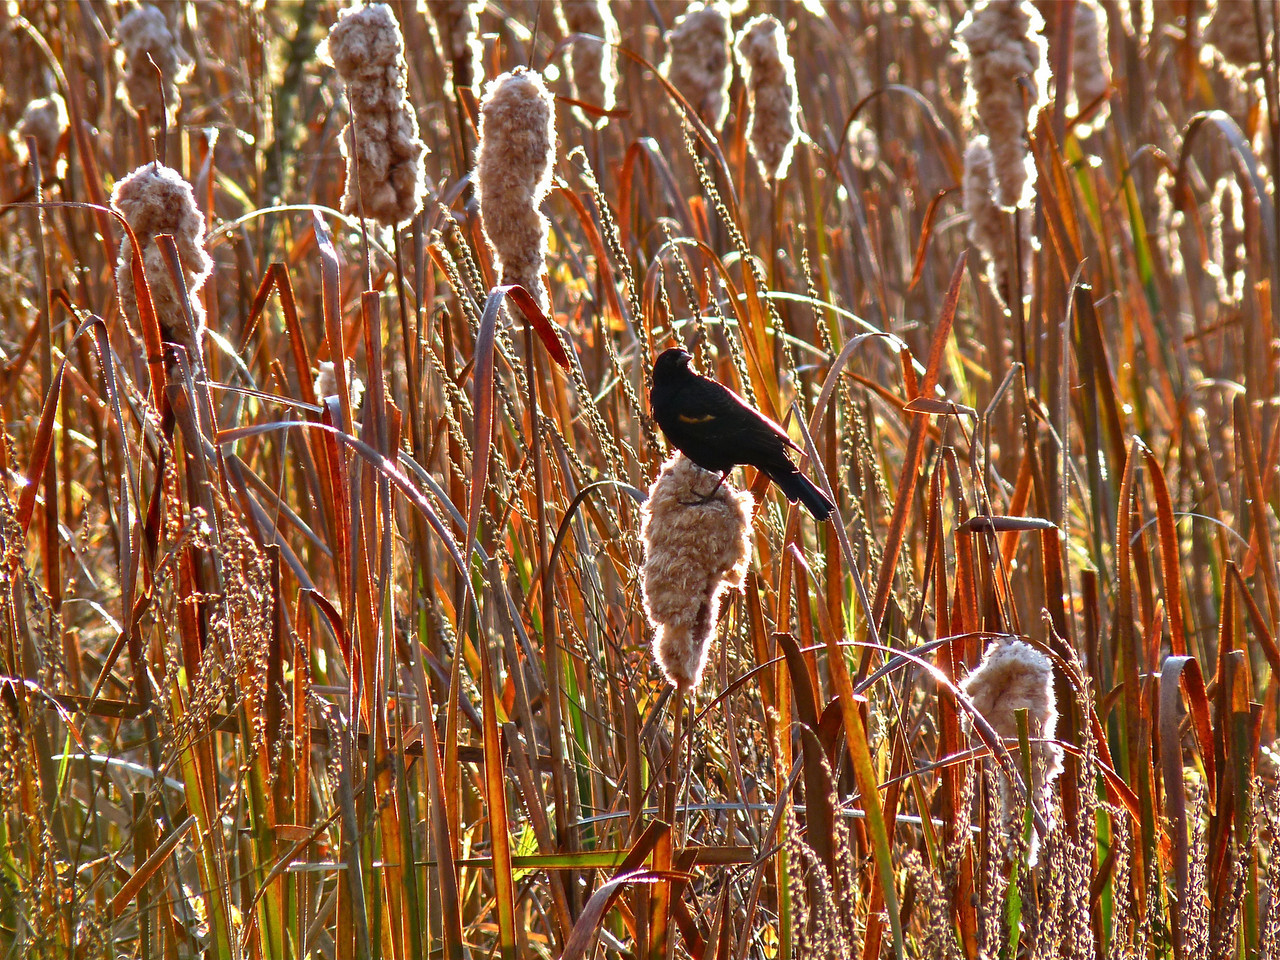 Redwing Blackbird taking a rest on a Crooked Lane cat nine tail.